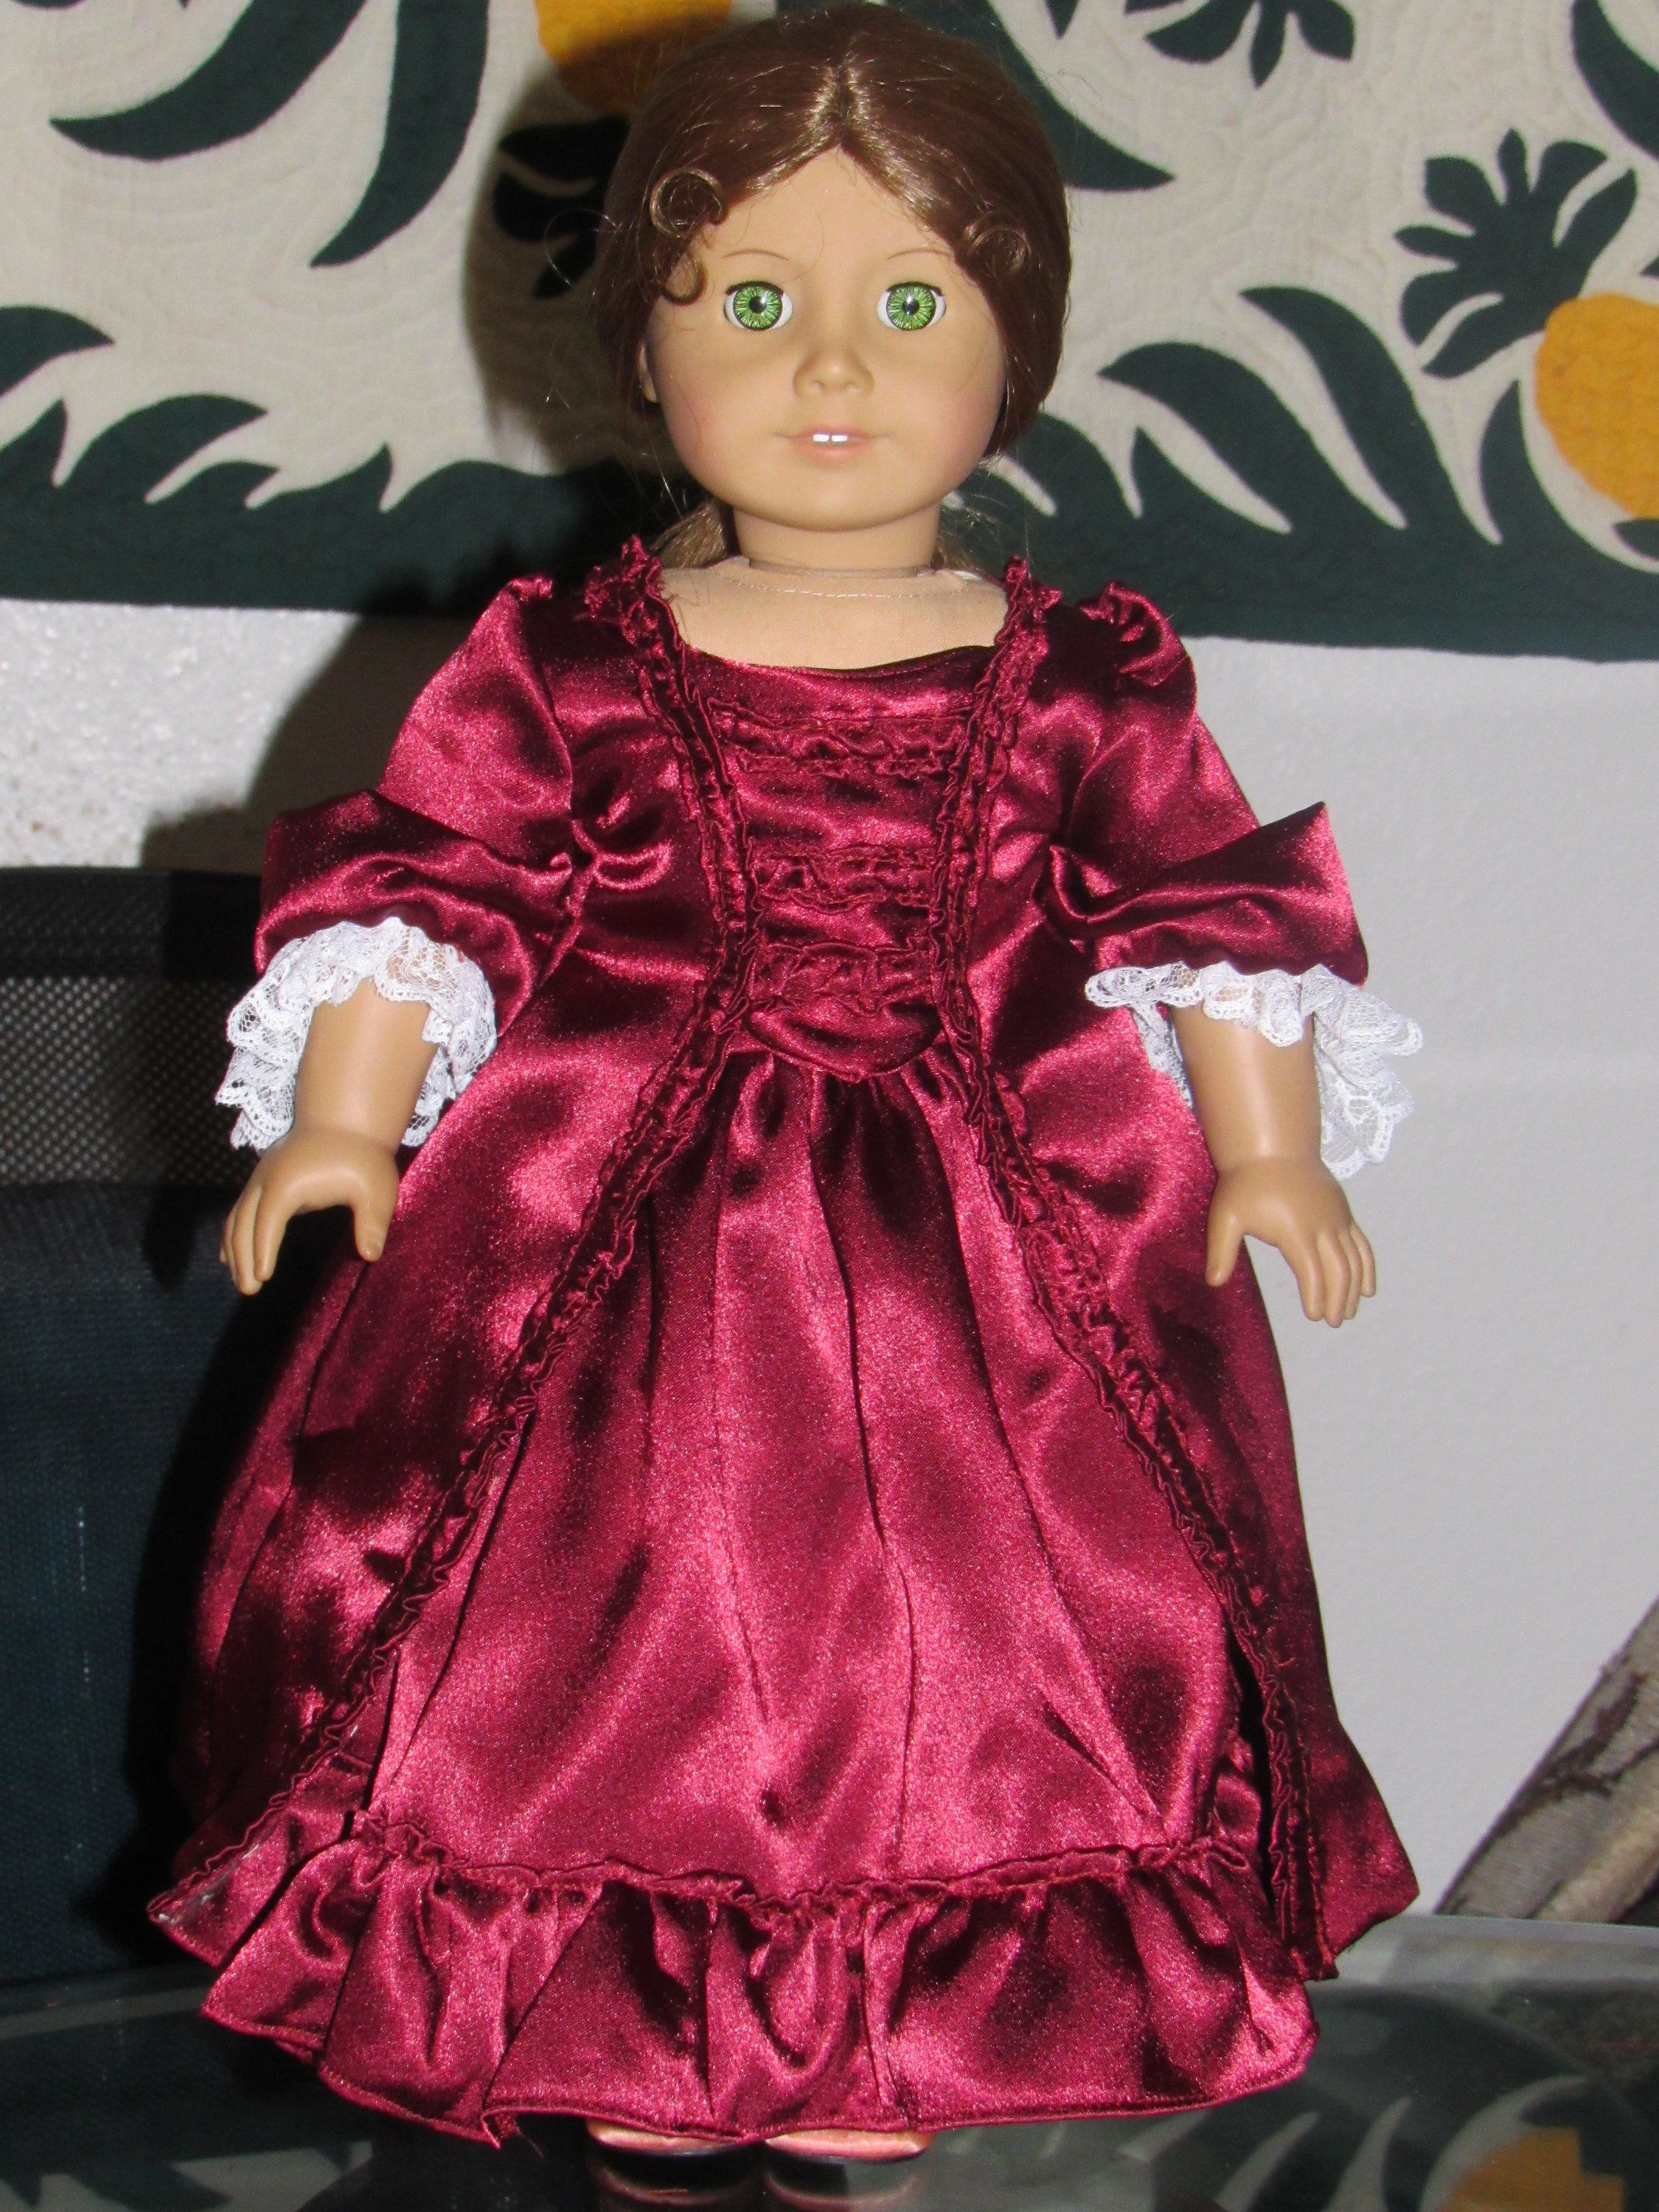 1770s Colonial Christmas Holiday Sacque Back Gown Dress for American Girl Felicity Elizabeth 18 inch doll #colonialdolldresses